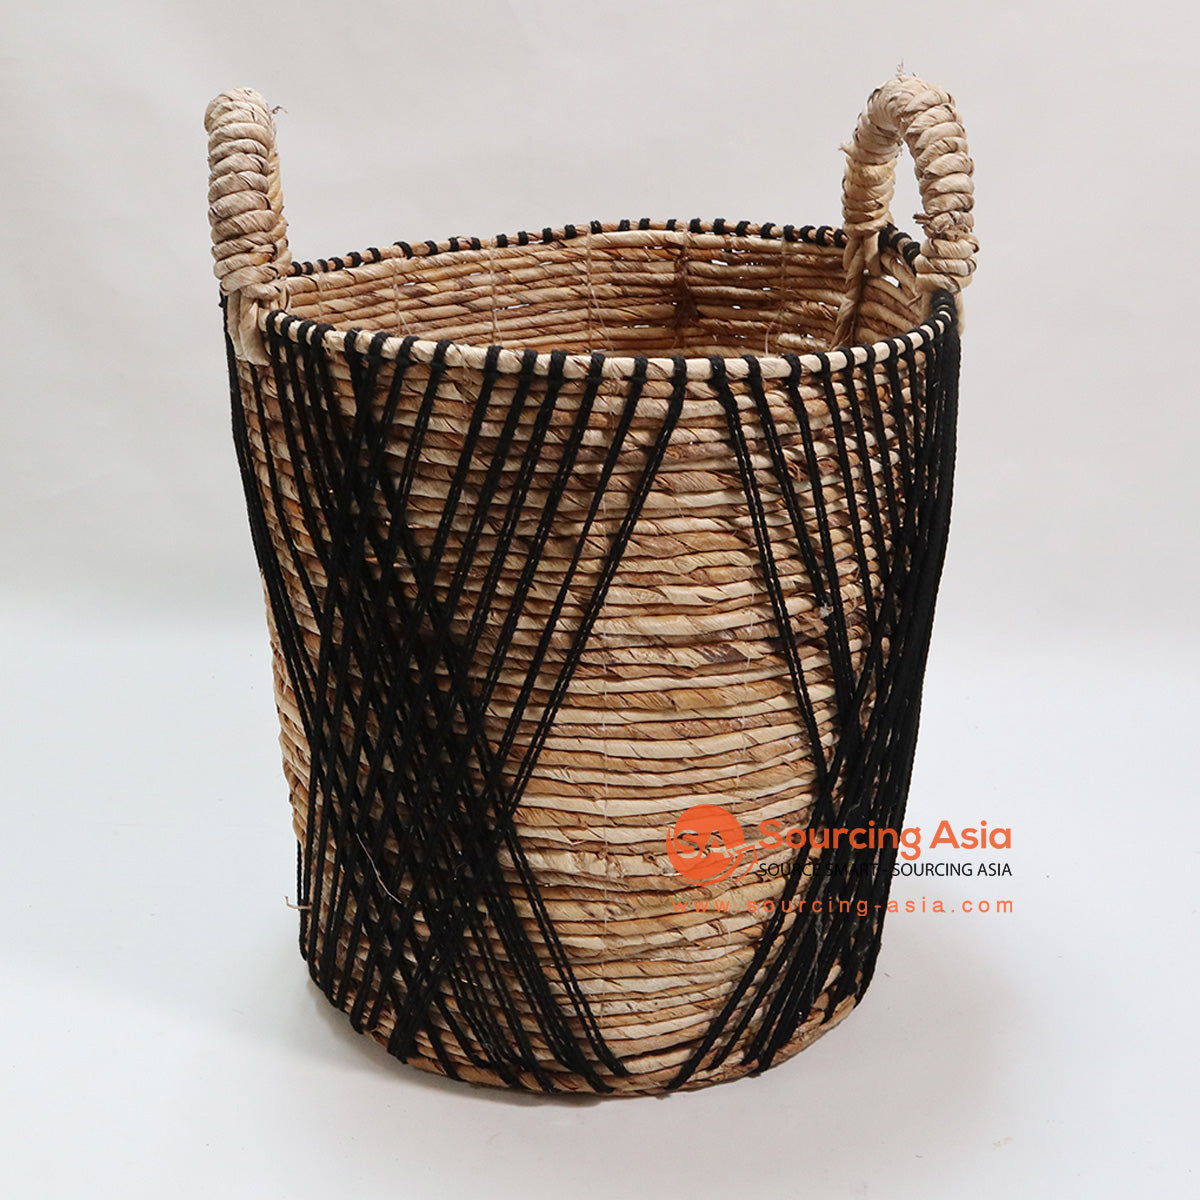 HBSC080 MENDONG BASKET WITH BLACK MACRAME